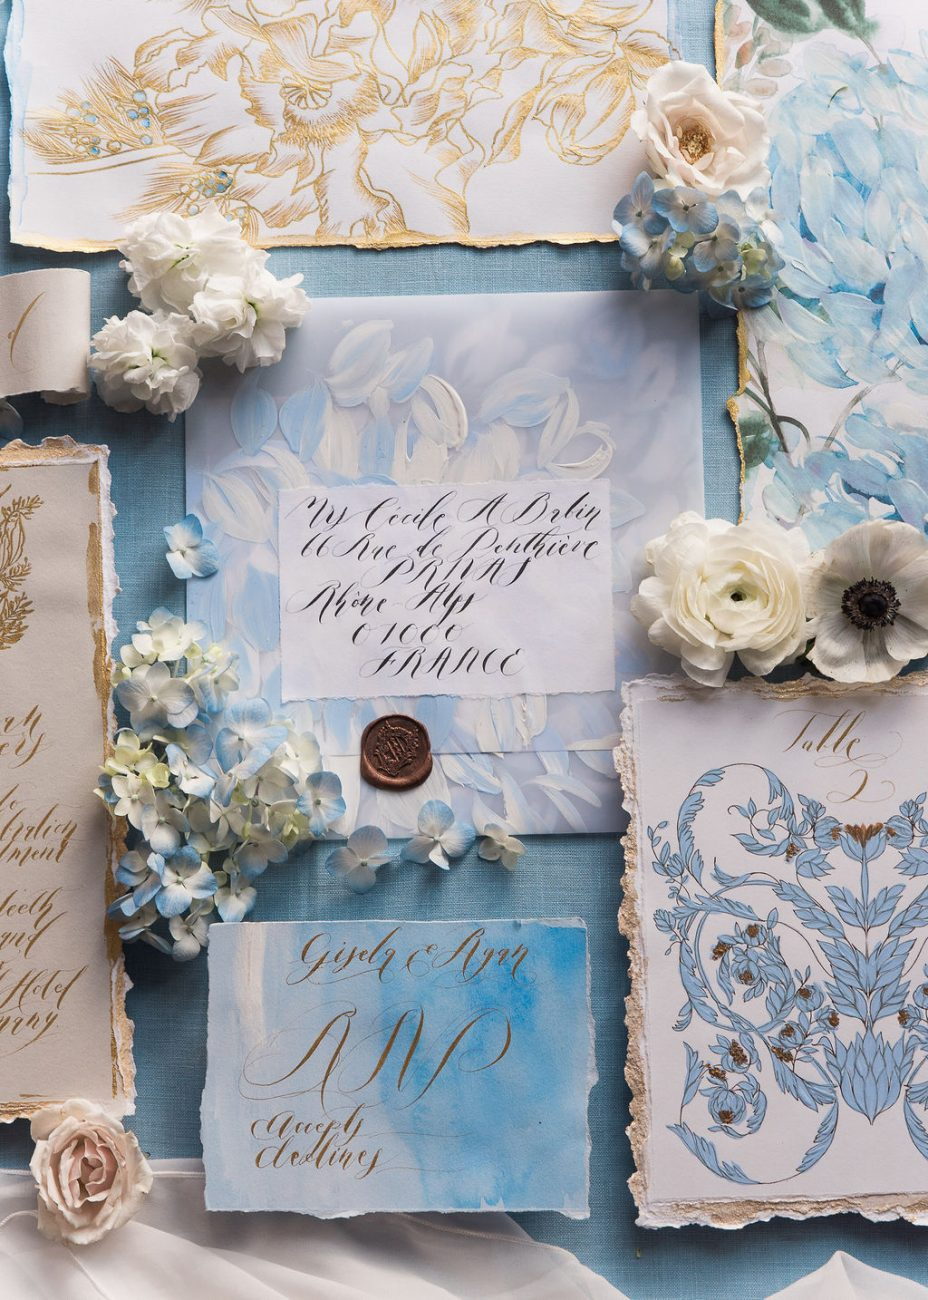 Hand painted wedding invitations with French inspired style in blue and white